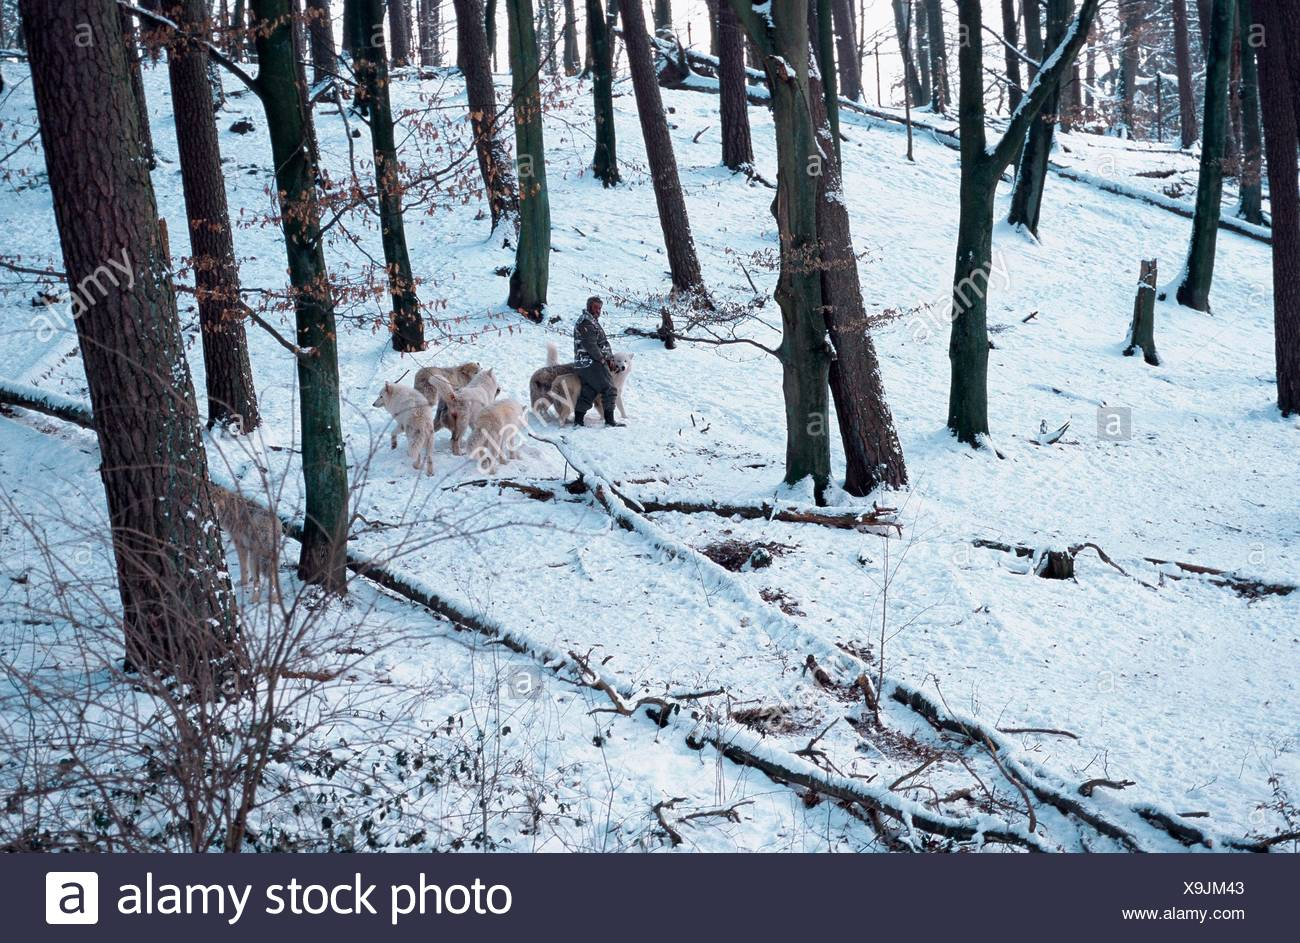 arctic wolf; tundra wolf (Canis lupus albus); pack with Werner Freund in snow; Germany; Saarland; Merzig. Stock Photo